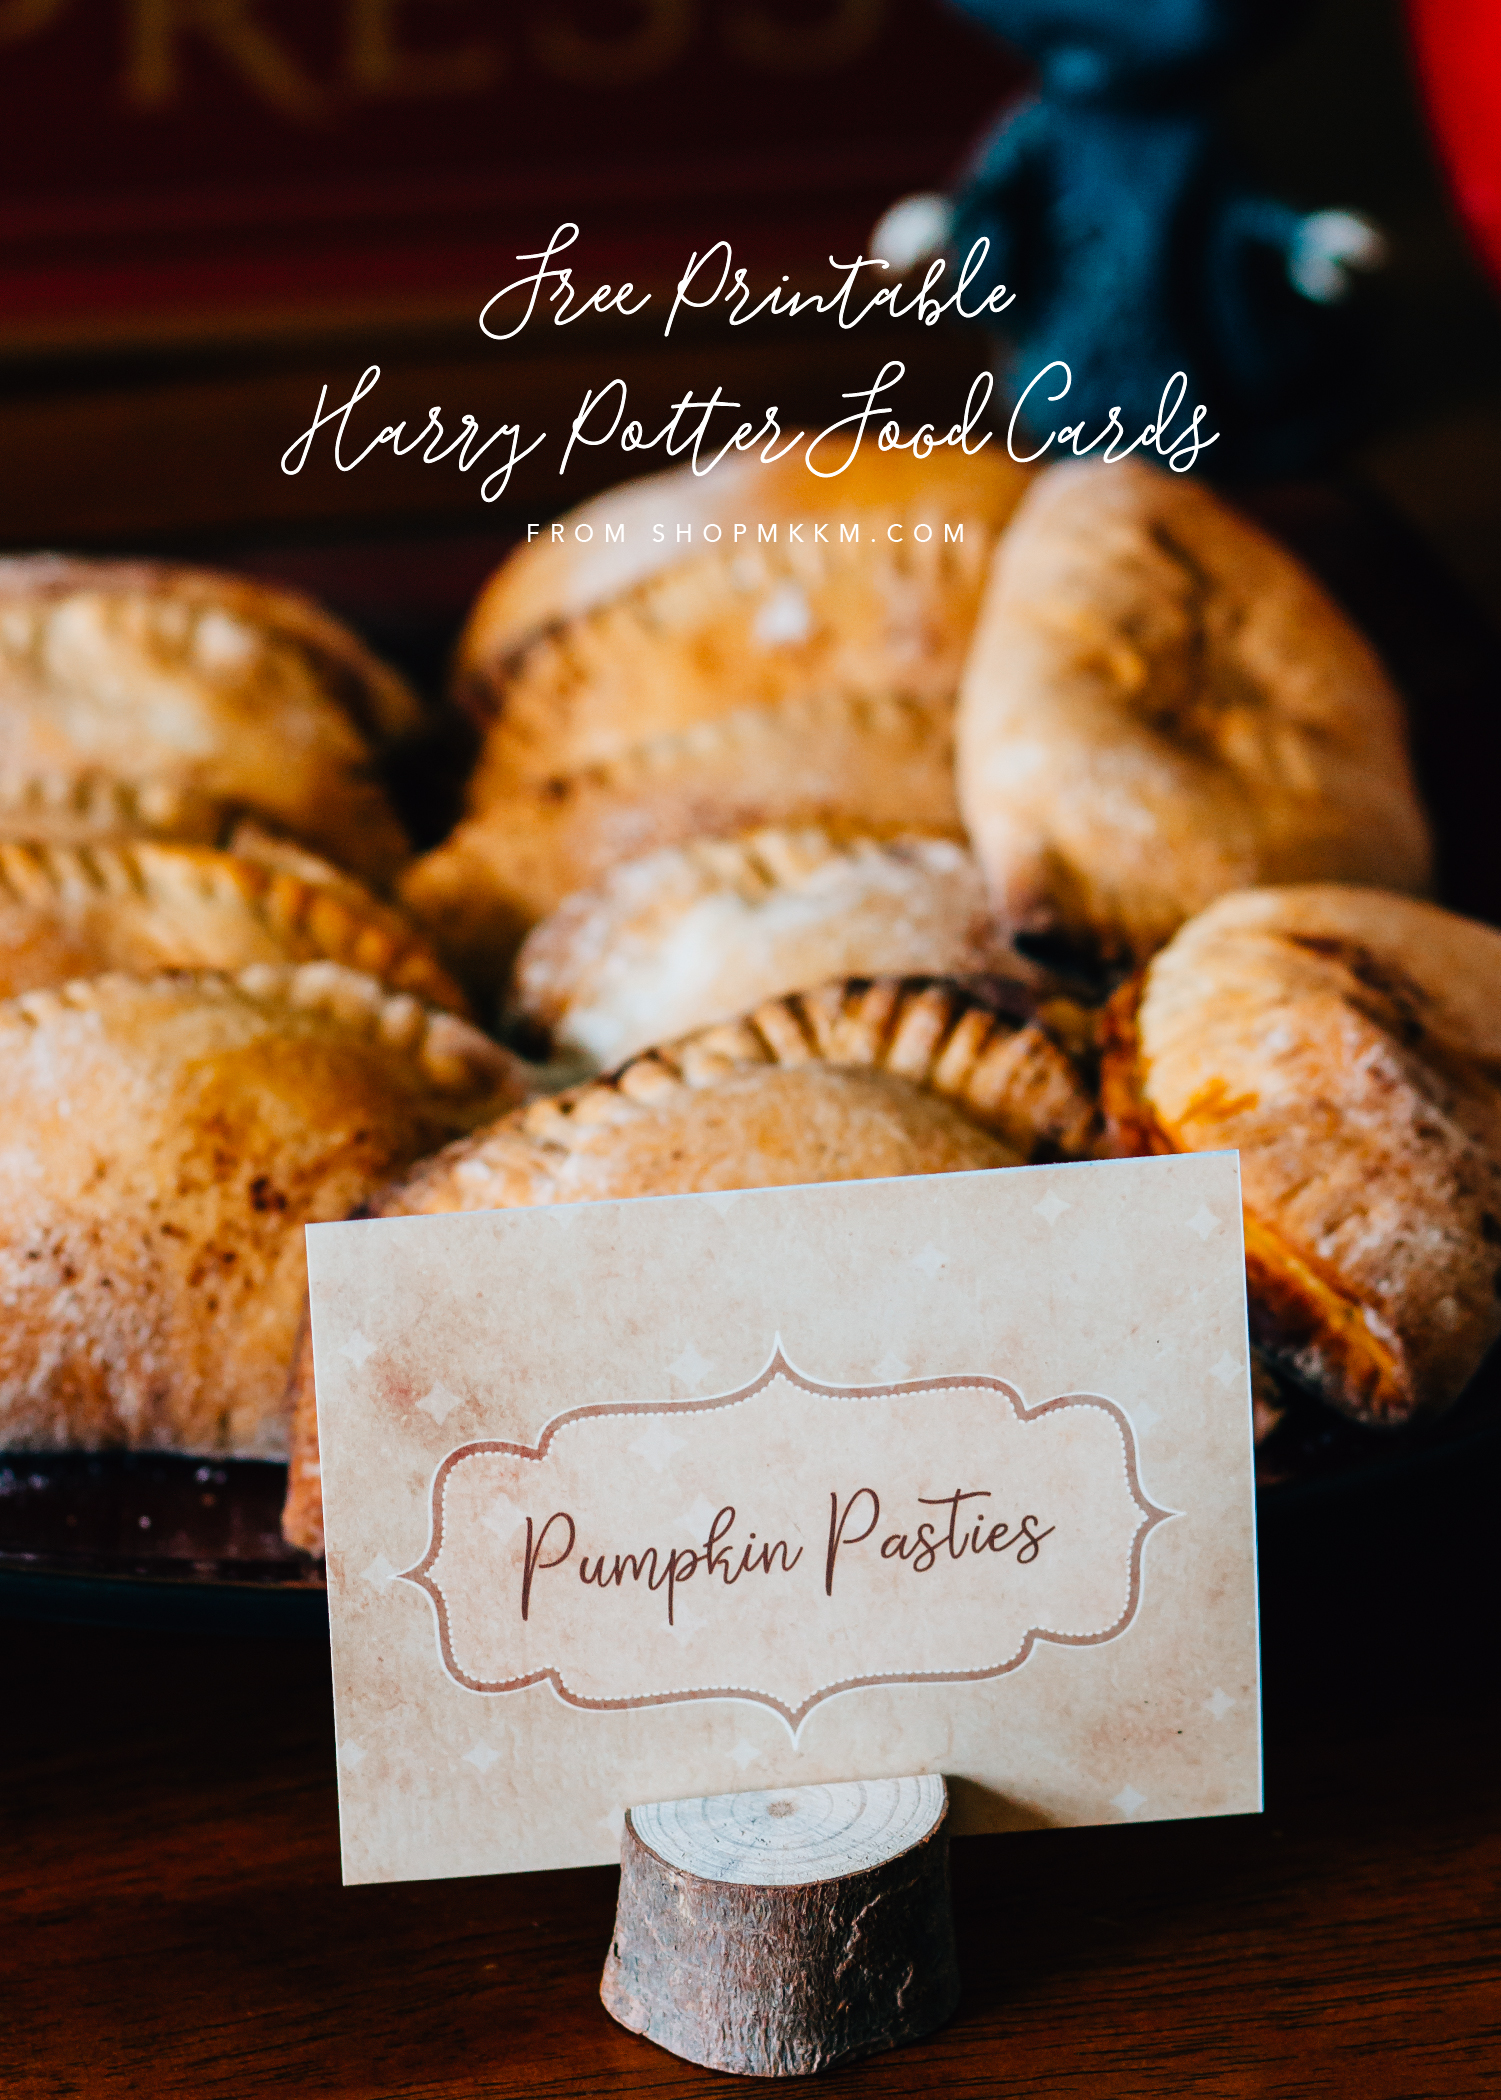 4 Free Harry Potter food cards for a Potter themed event. Pumpkin Pasties, Herbology Bites, and more. // Designs by MKKM Designs